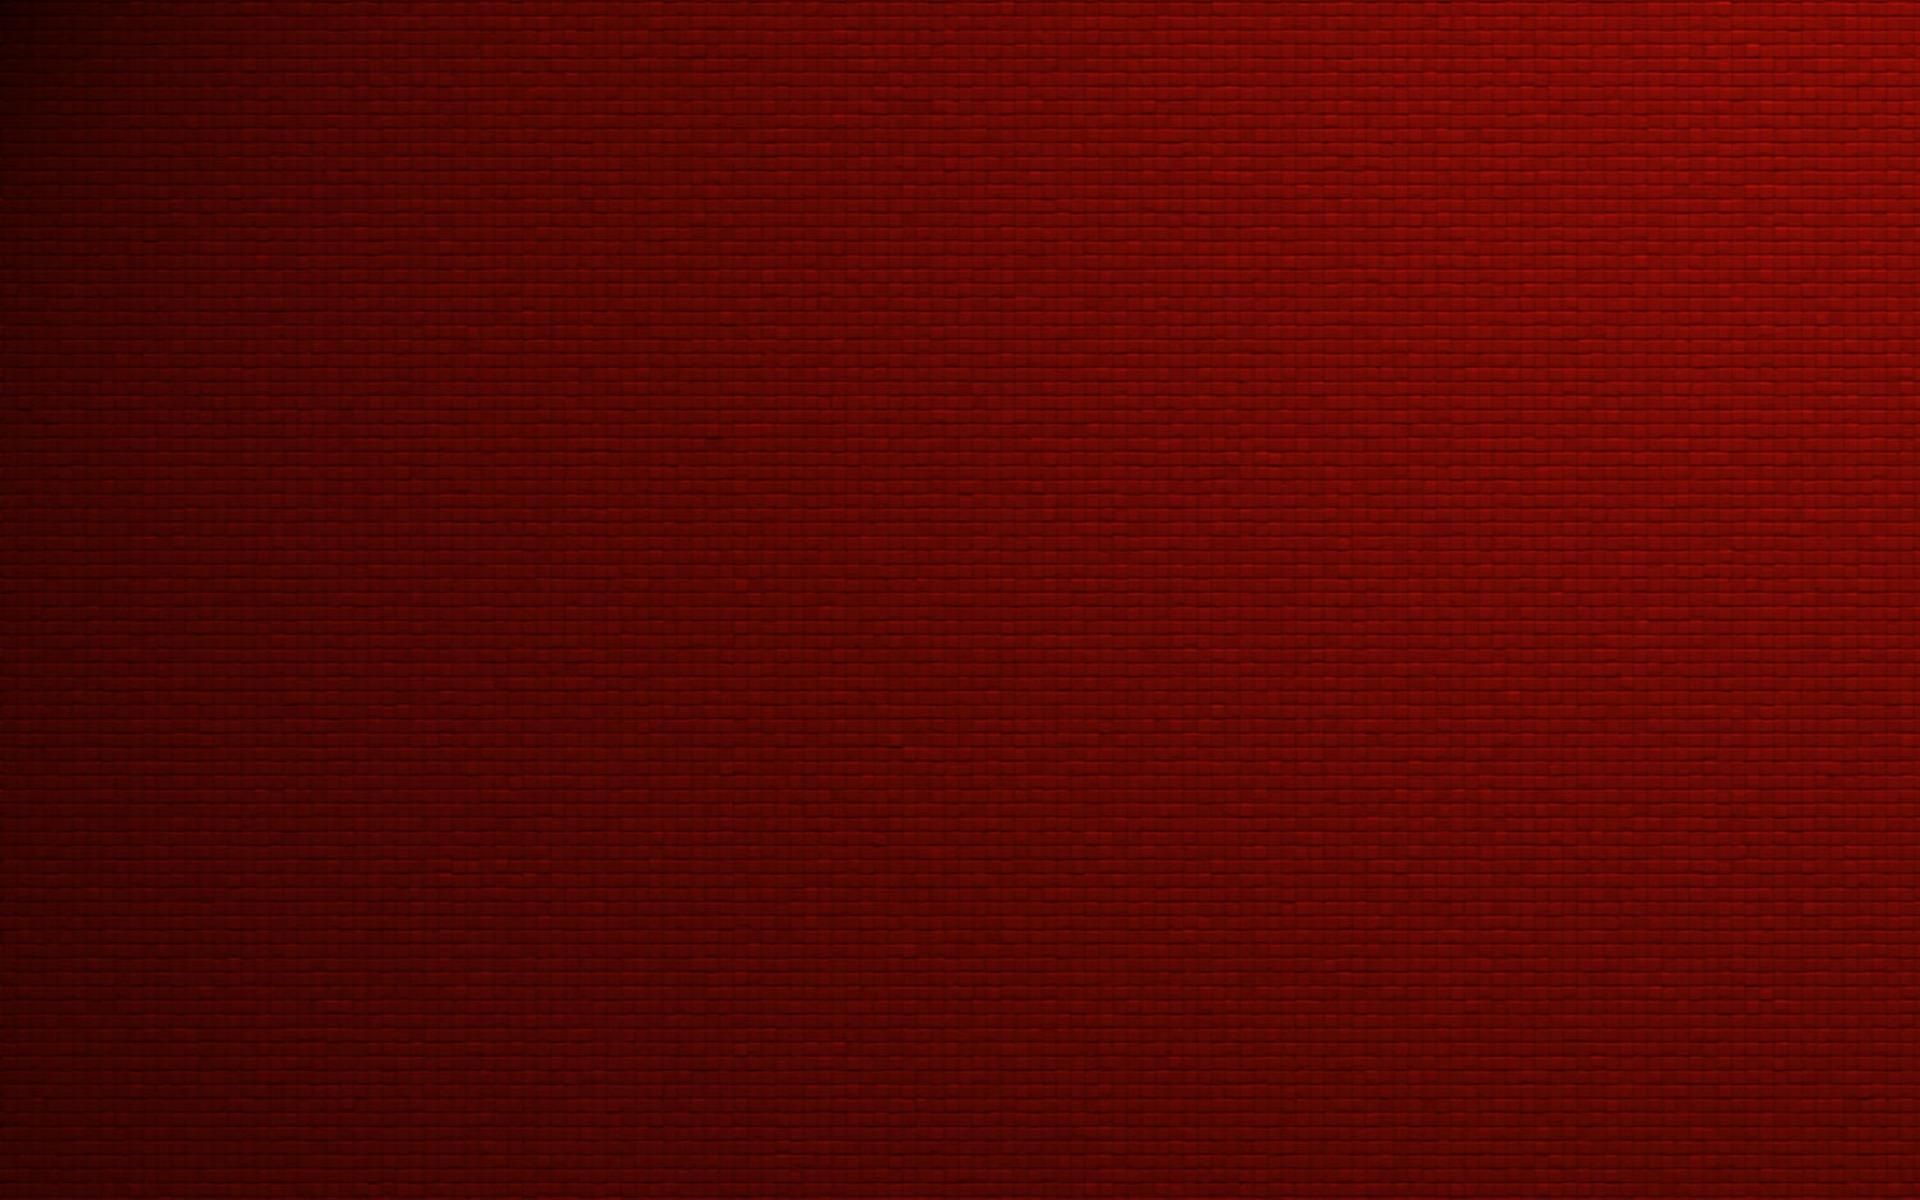 1920x1200 red desktop wallpaper abstract red wallpaper